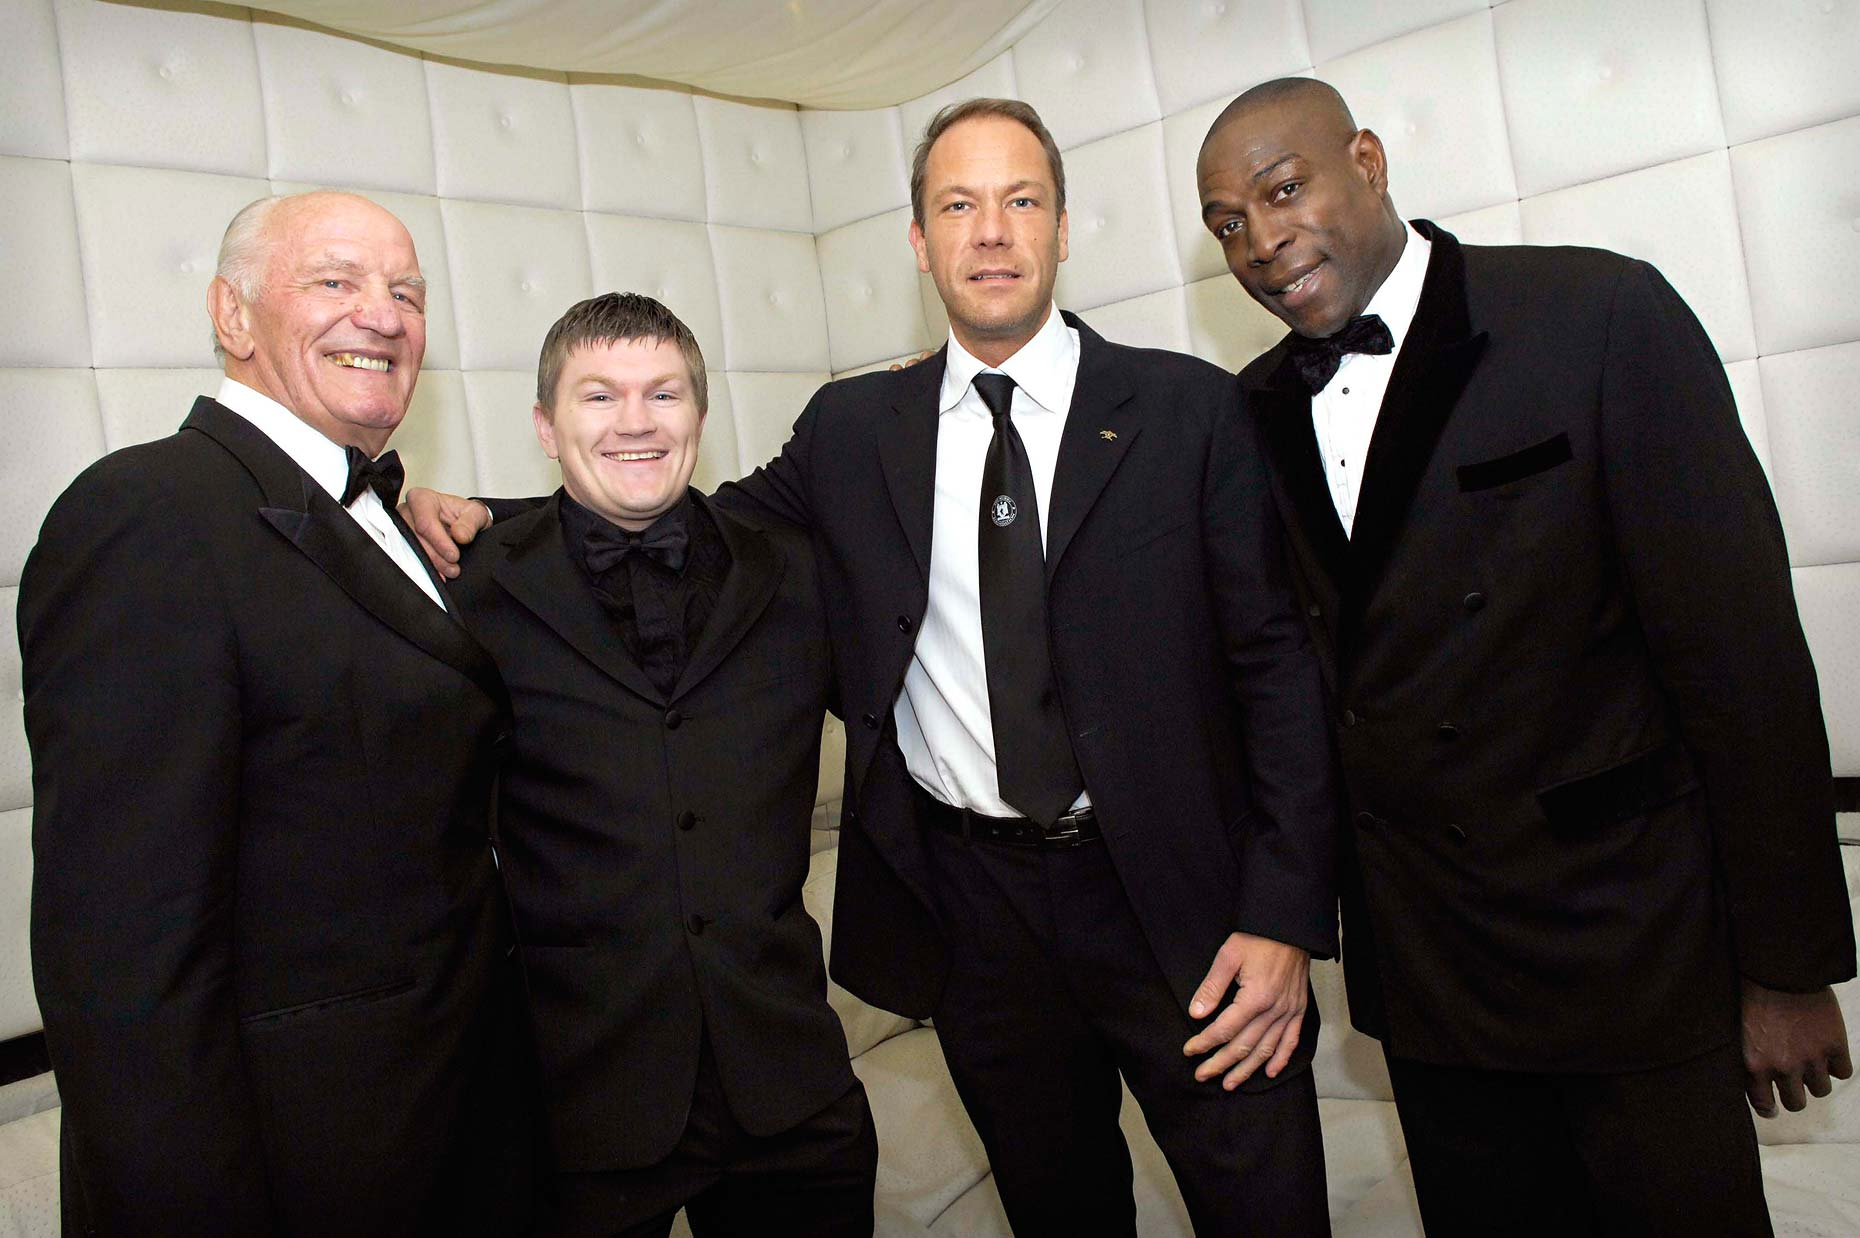 1008 Sir-Henry-Copper-Ricky-Hatton-Murray-Foundation-Frank-Bruno-PR-and-Corporate.jpg